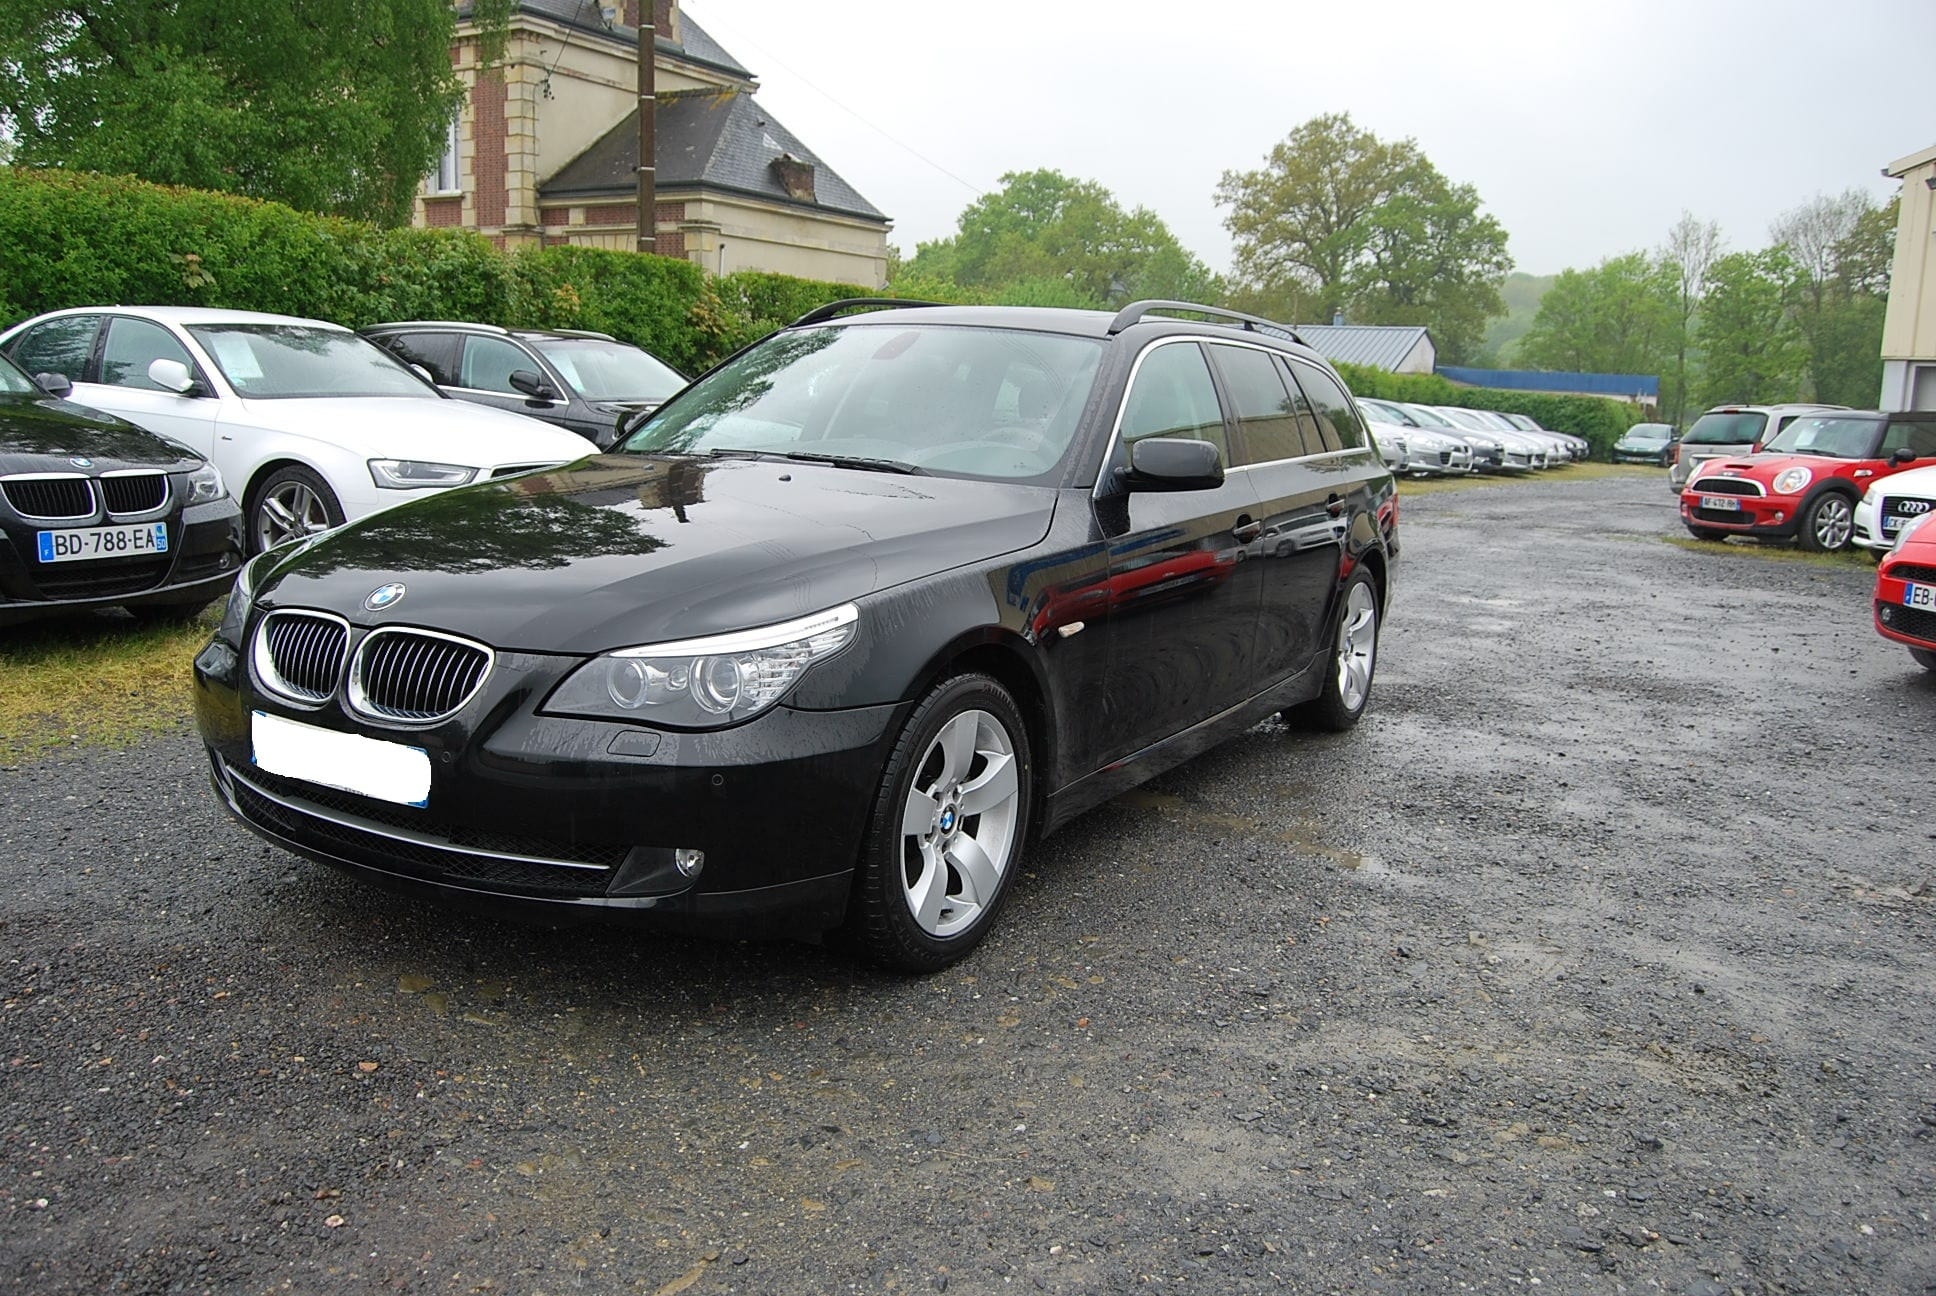 Bmw SERIE 5 TOURING 530 XDA 231 CV PACK LUXE - Image 2